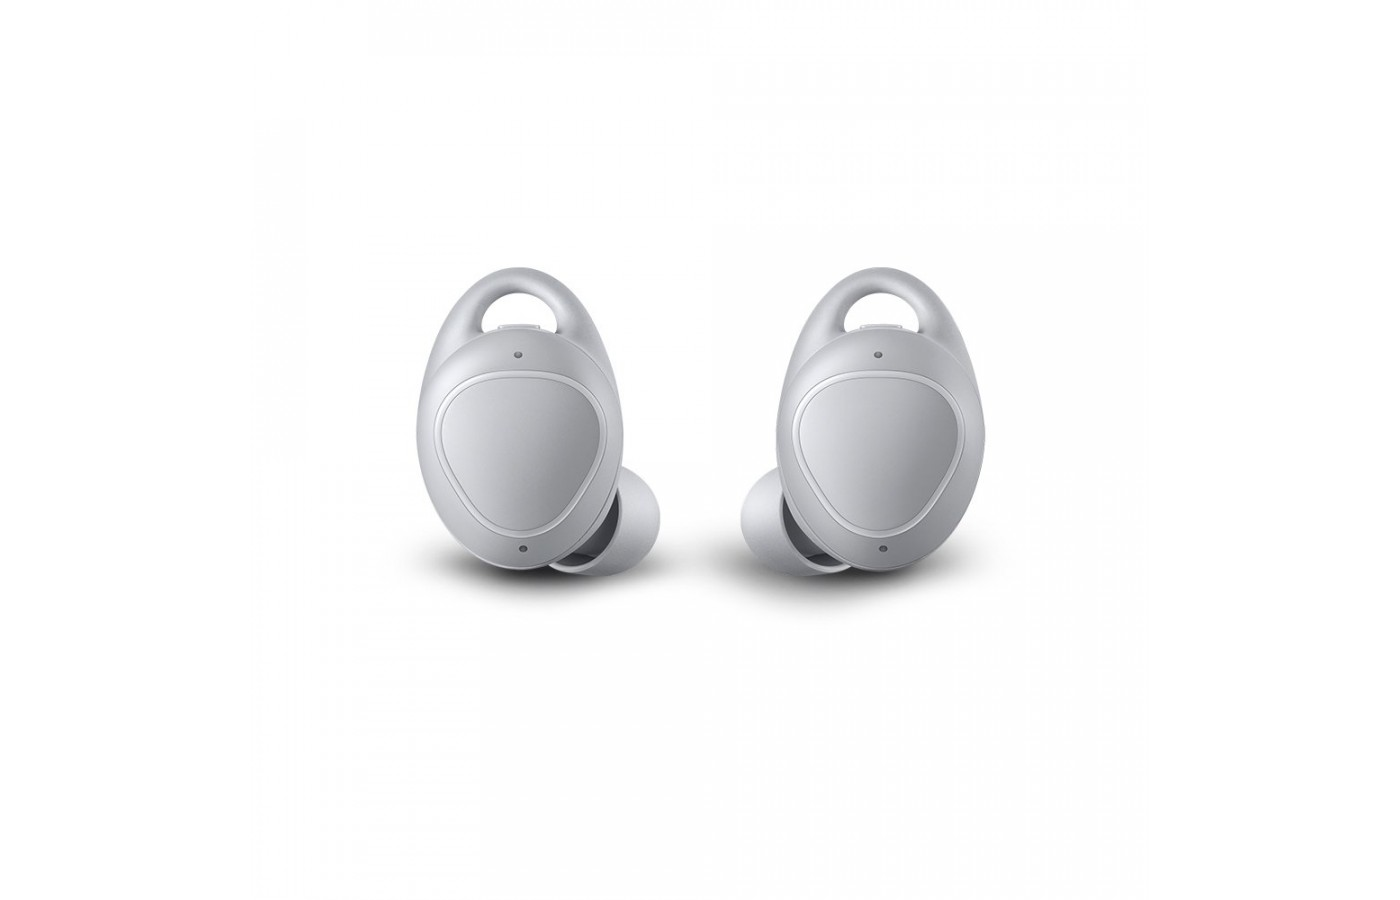 The Iconix fit both snuggly and comfortably in the ear.